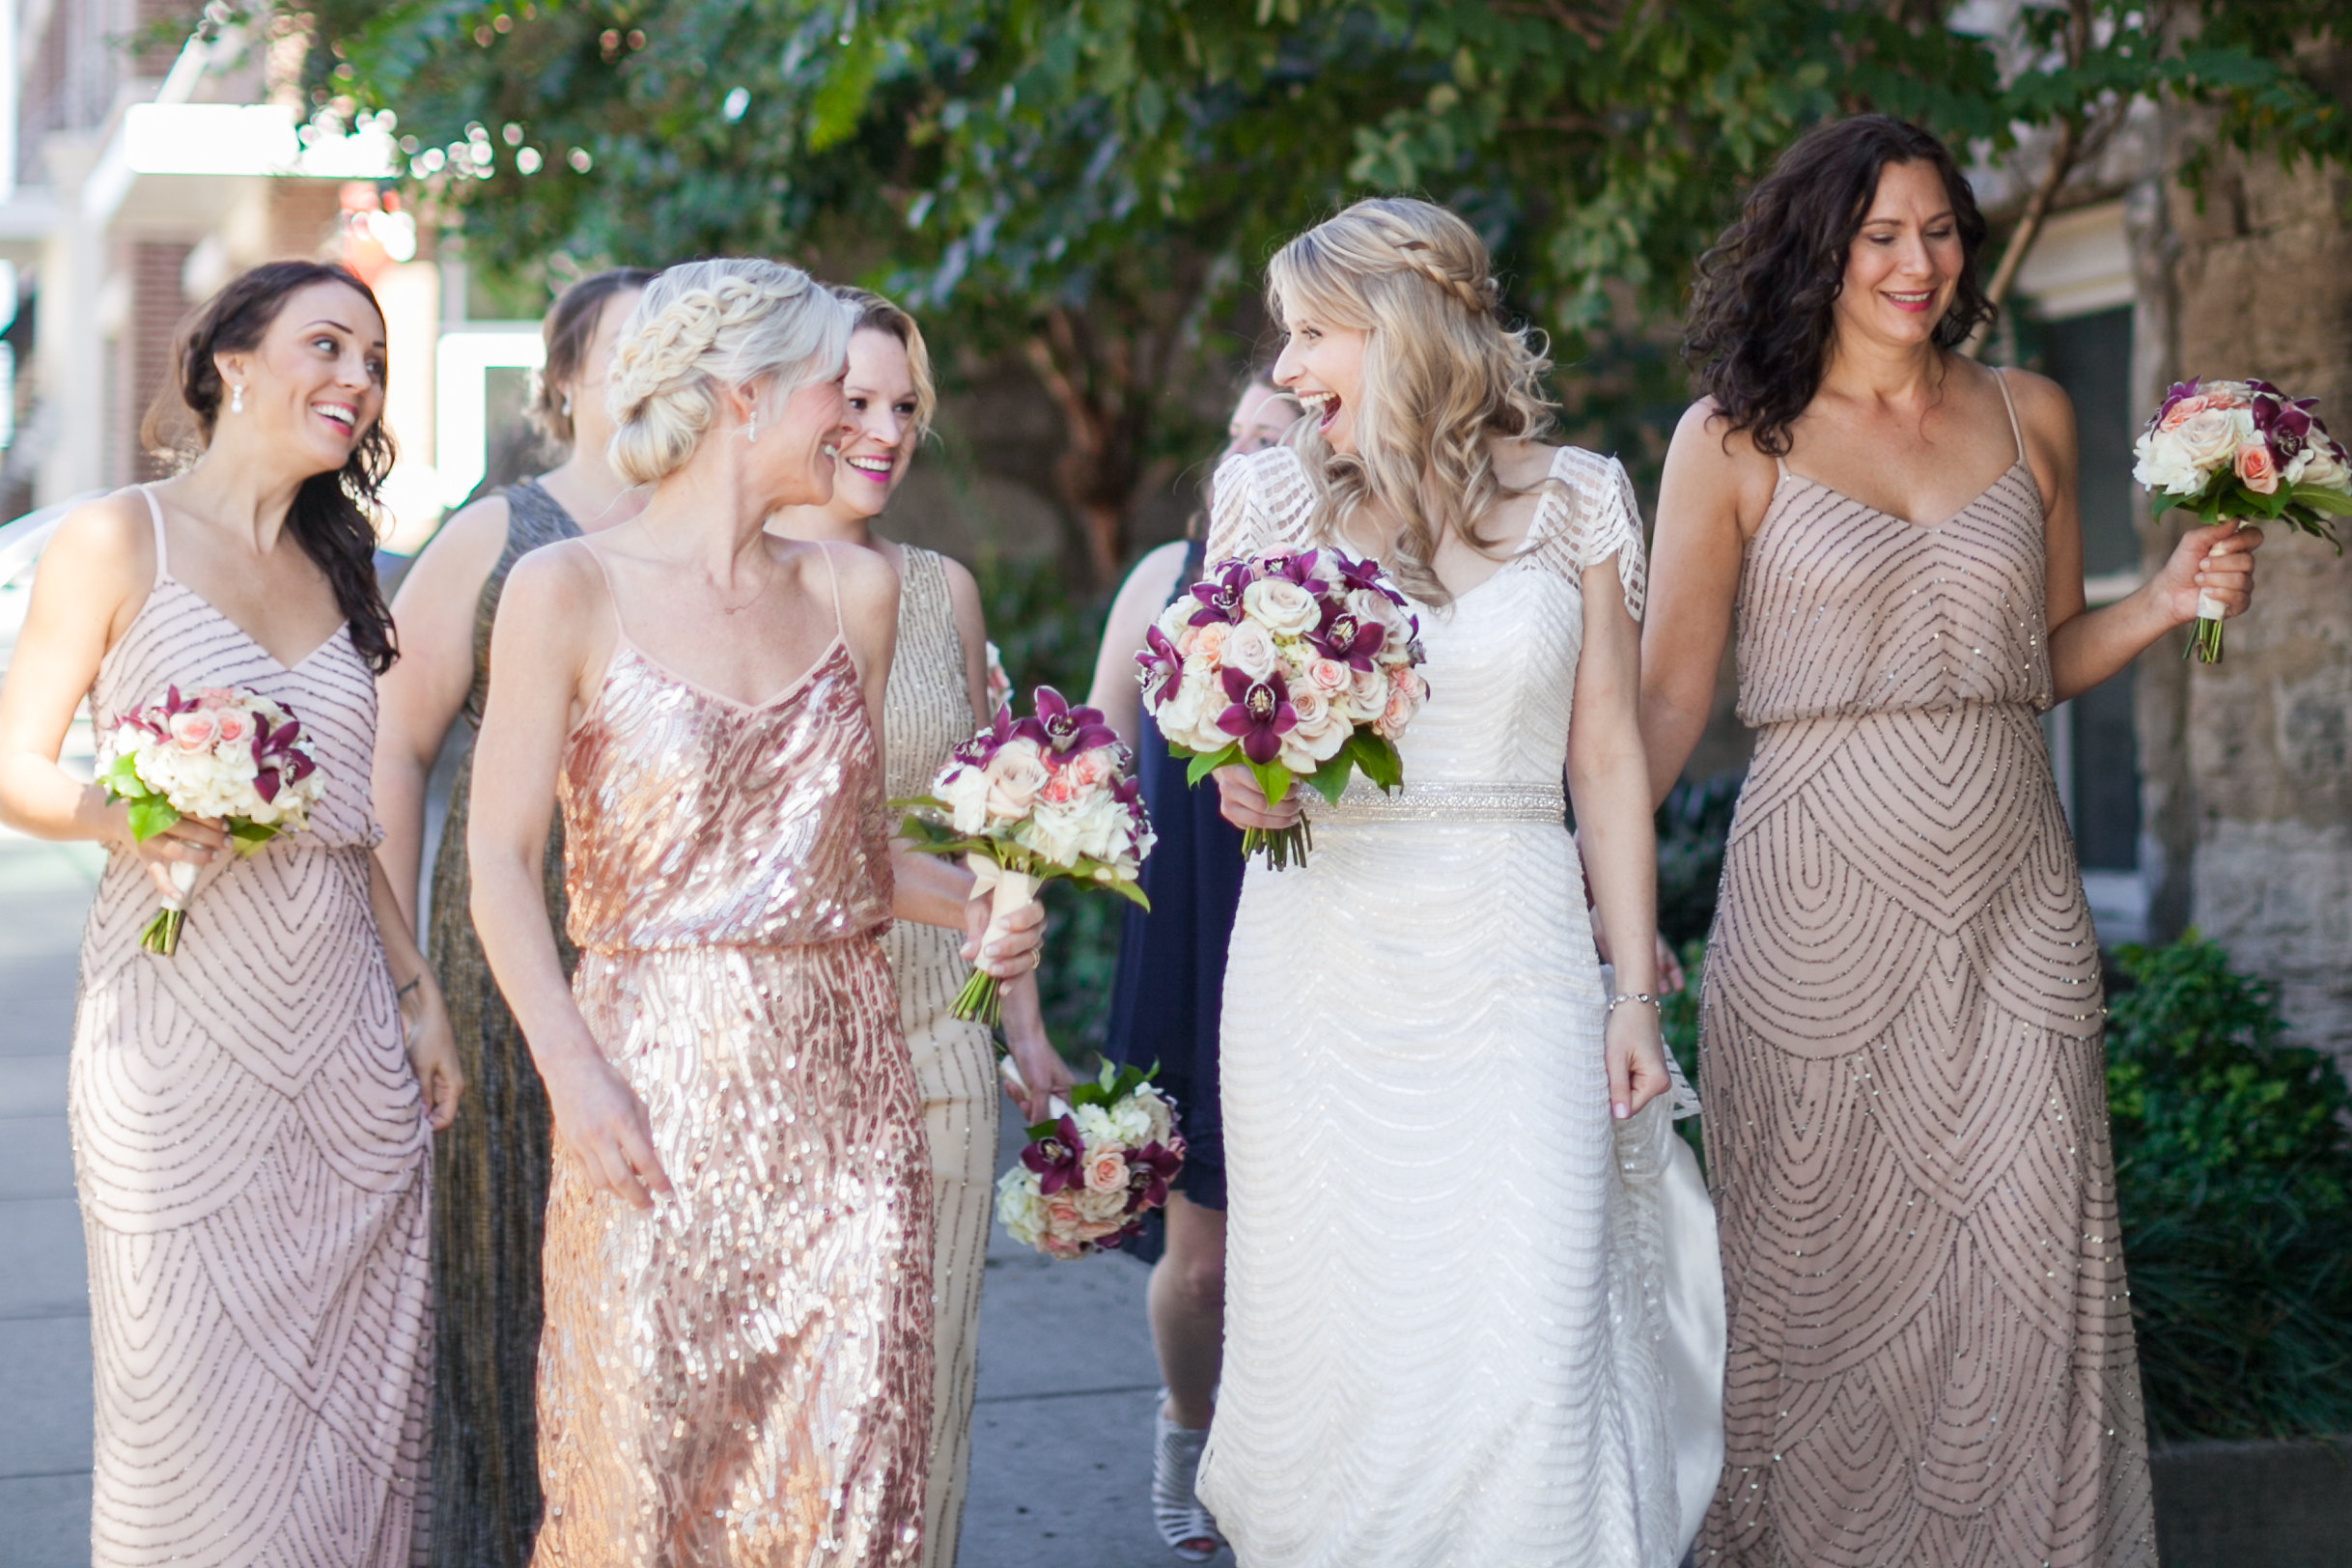 Allison and bridesmaids